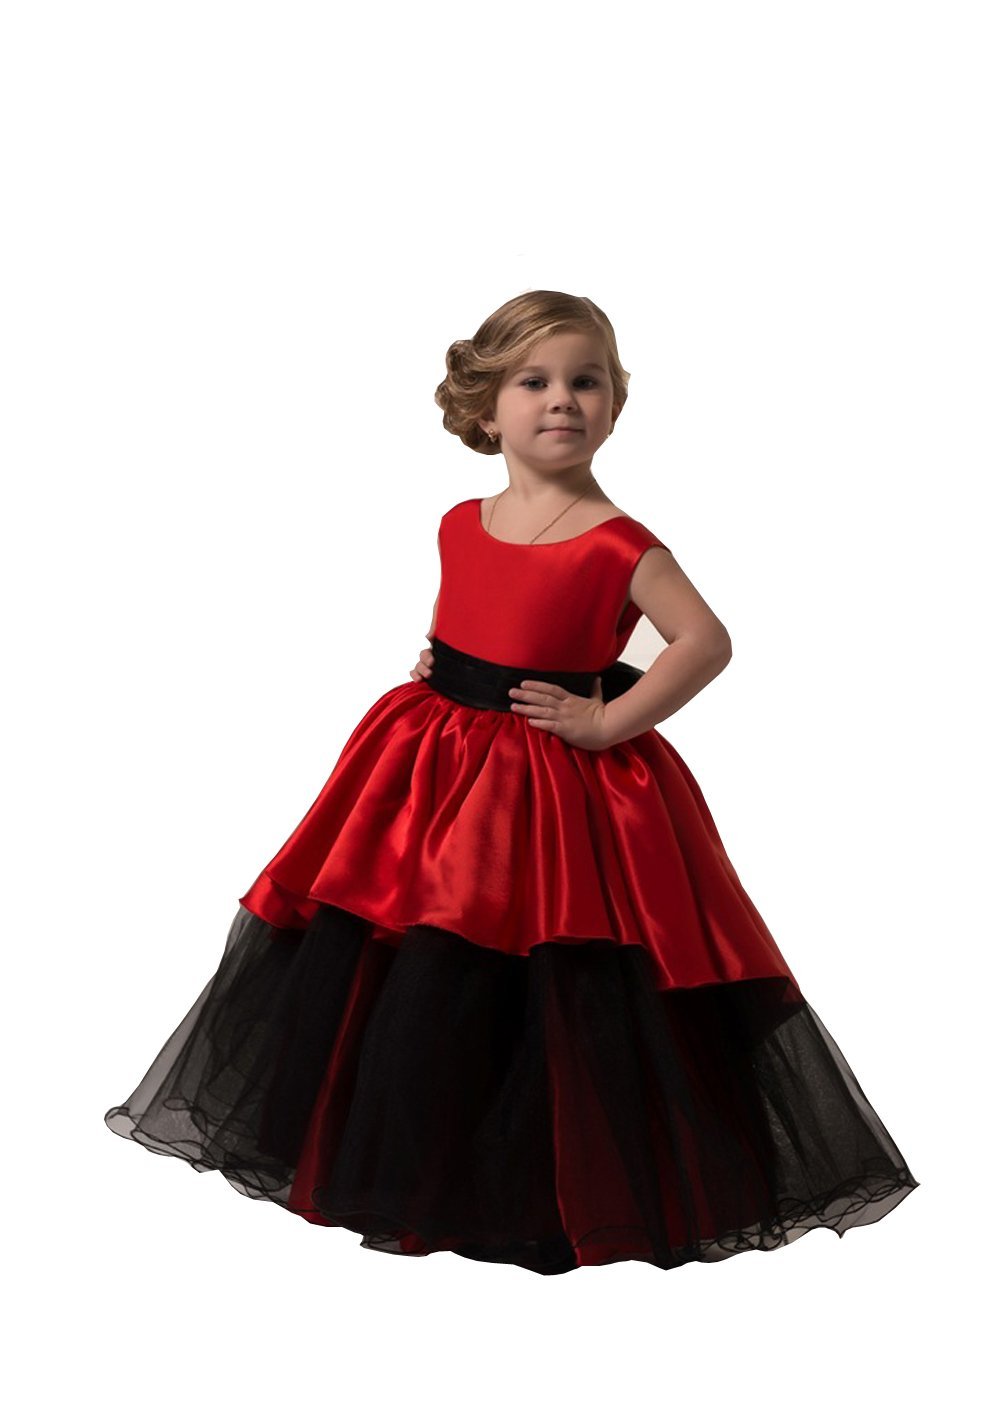 Banfvting Graduation Gown Children Red and Black Floor Length Flower Girl Dresses Sleeveless With Sash (6)